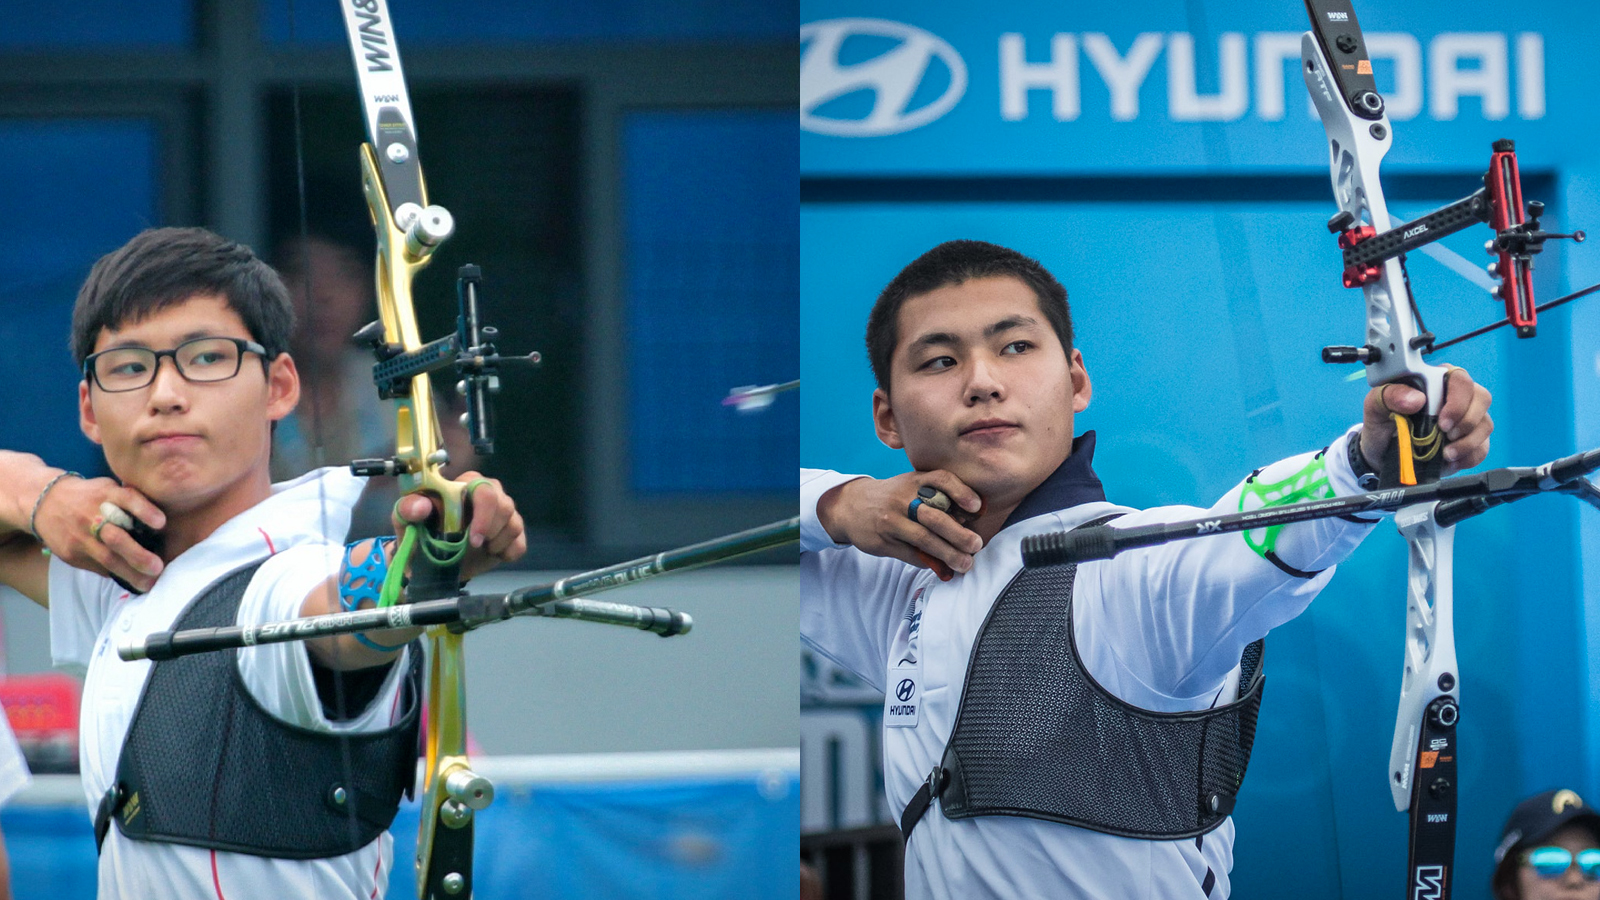 From boy to man: 2014 Youth Olympic winner Lee Woo Seok now world #2